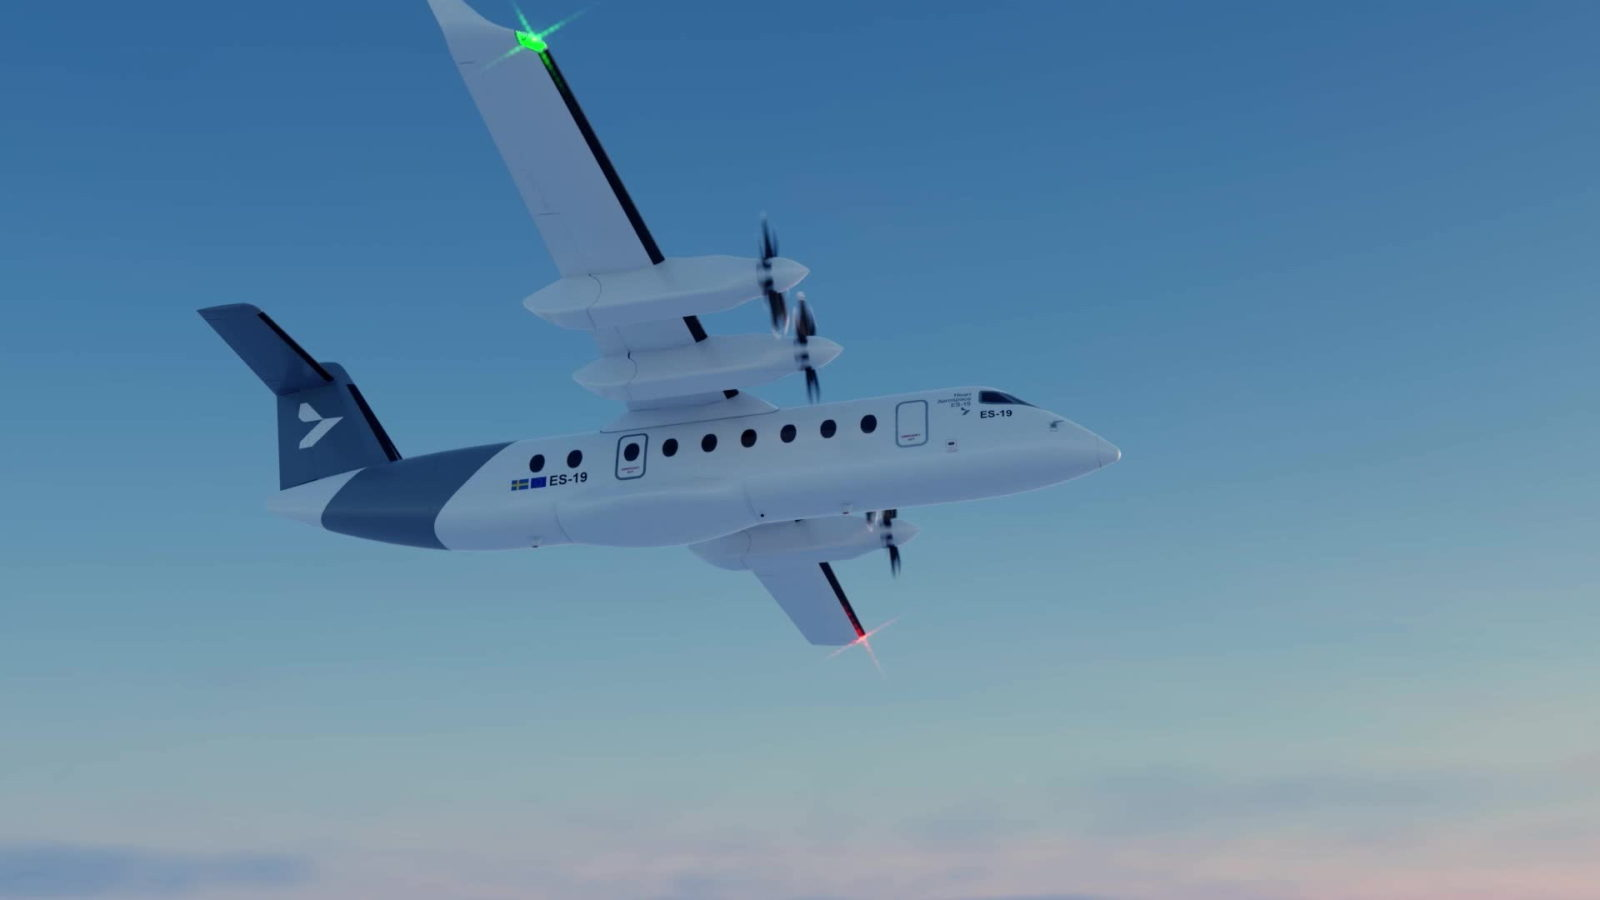 ready-to-island-hop-aboard-an-electric-airplane?-united-airlines-just-bought-it